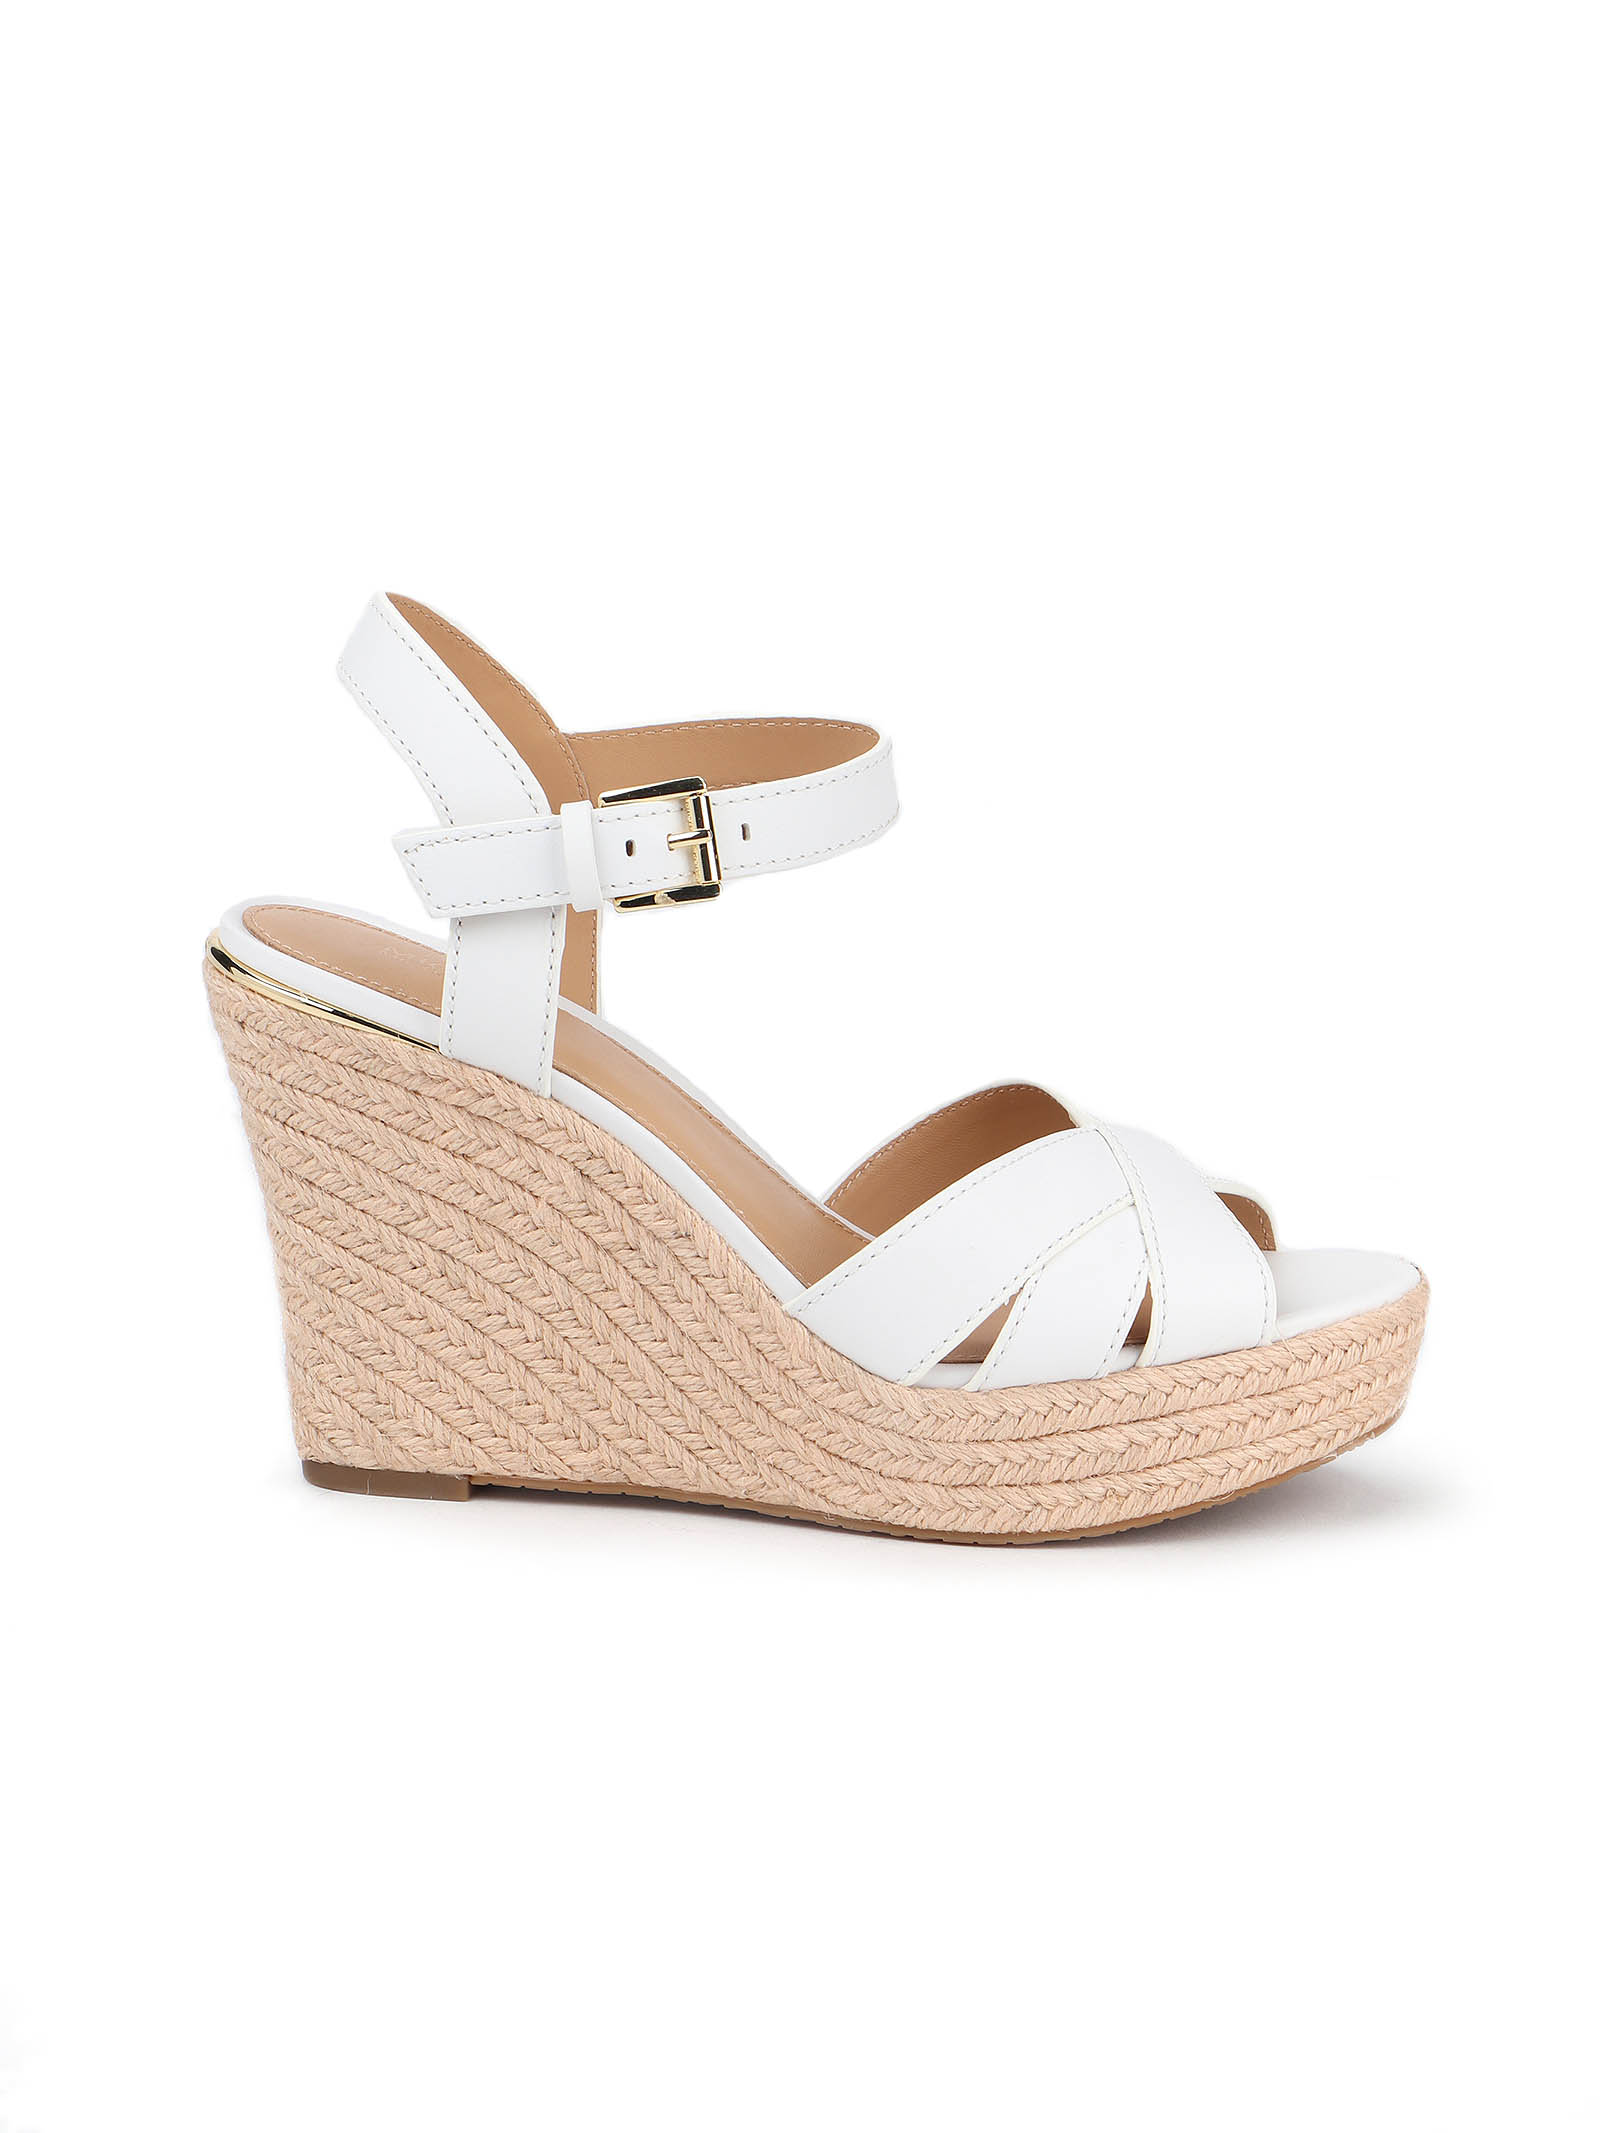 Picture of Michael Kors | Suzette Wedge